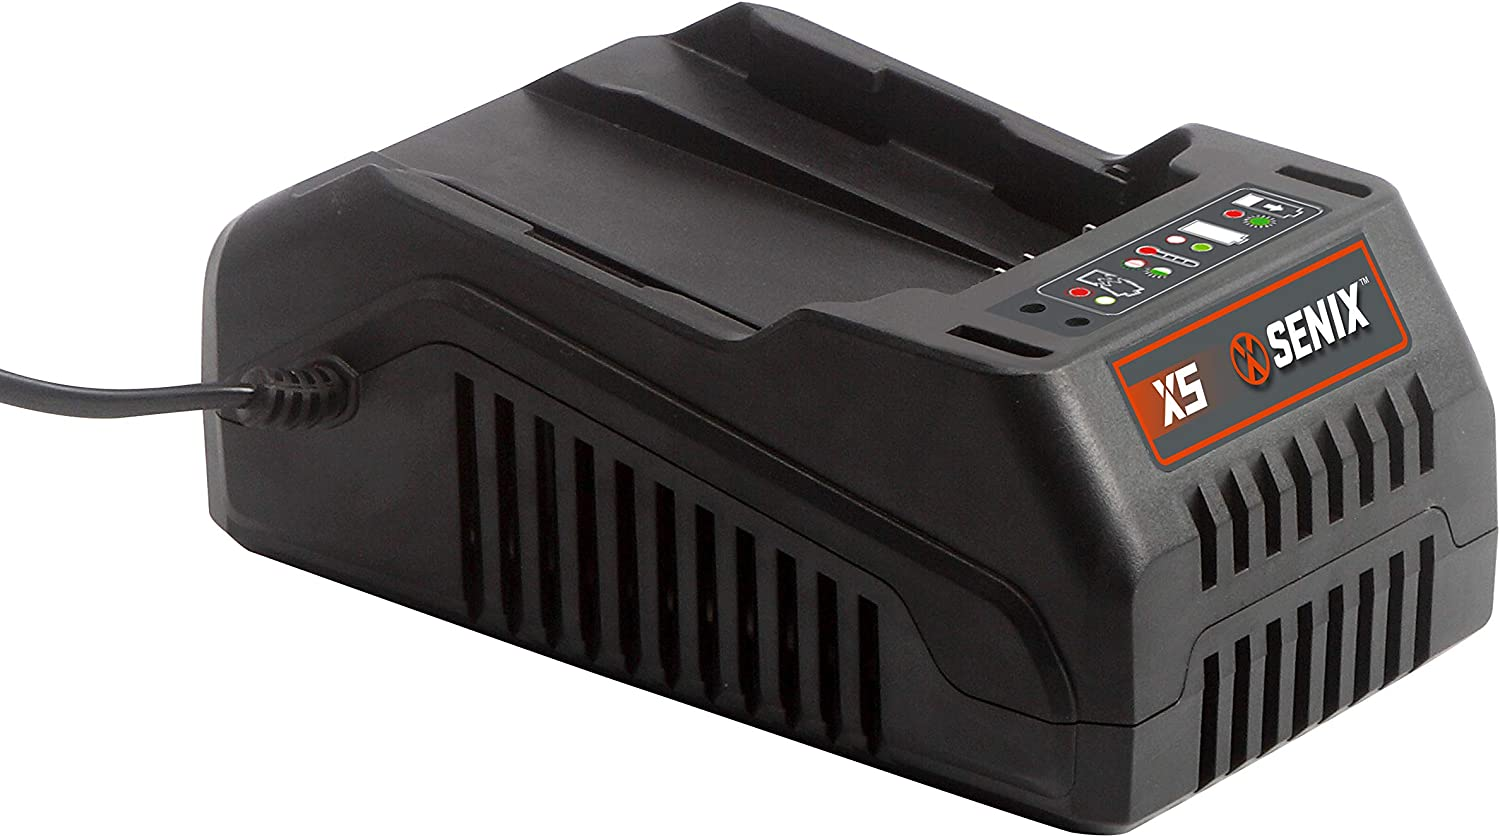 SENIX BLAX5-M-C 58V 90 Minute Battery Charger with Automatic Charging Status Indicator, Blue